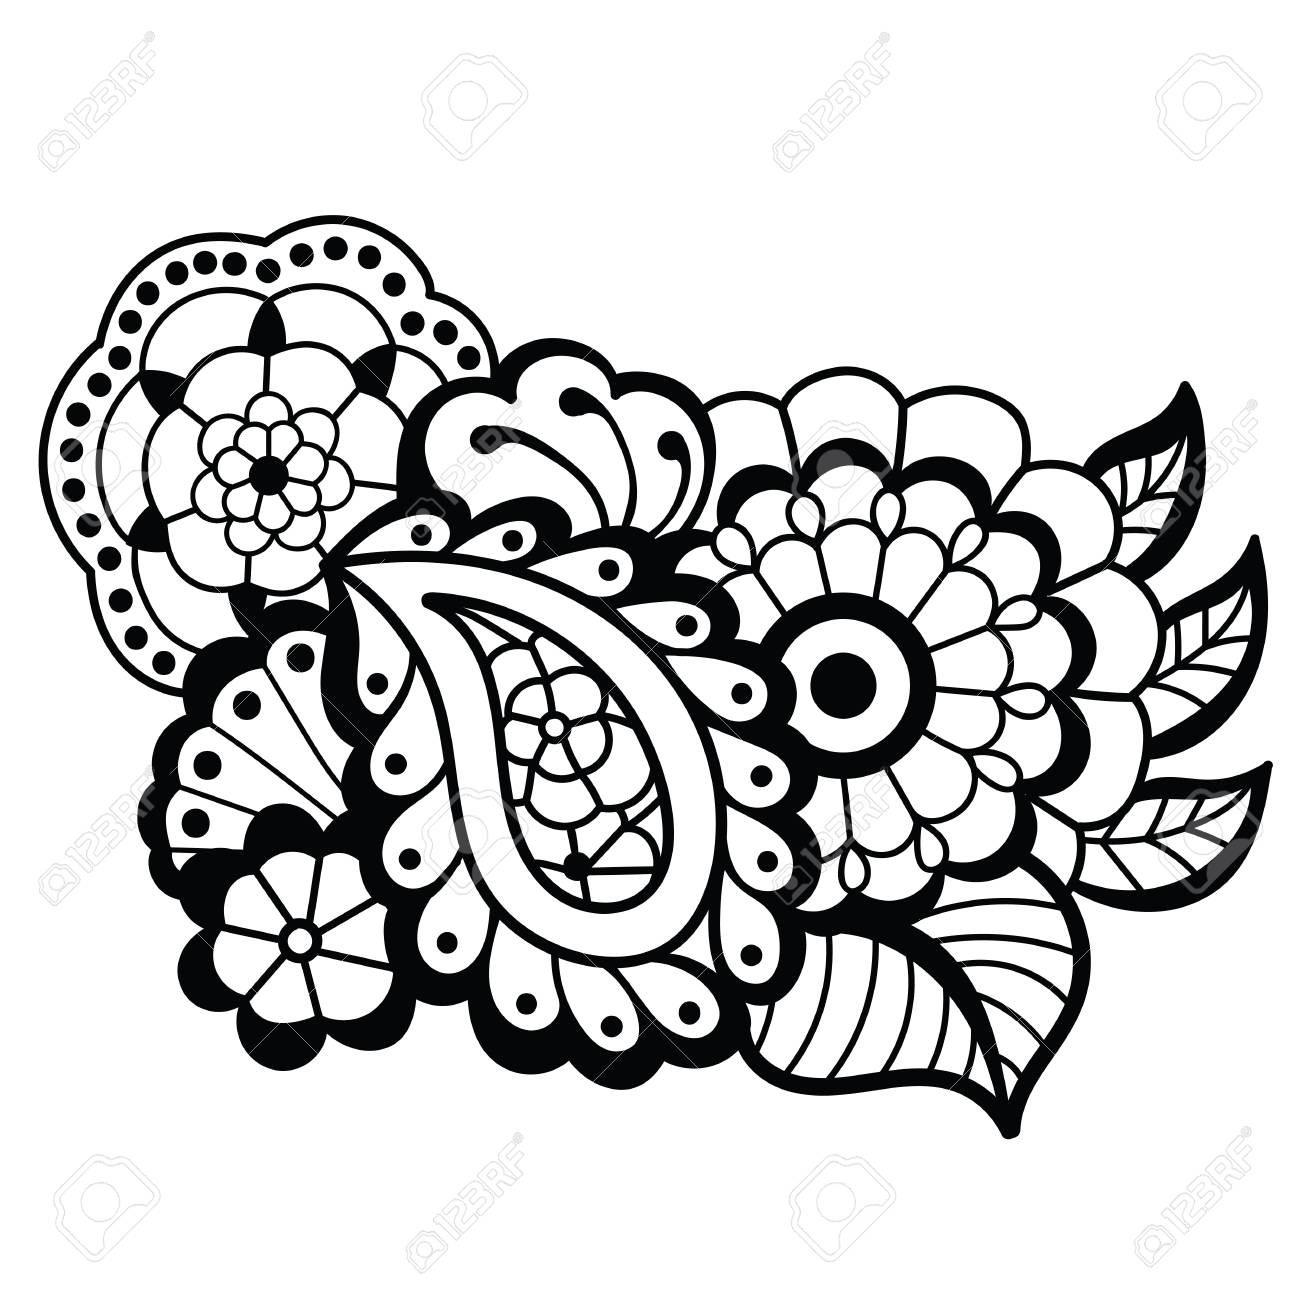 Mehndi design. Floral pattern. » Clipart Station.